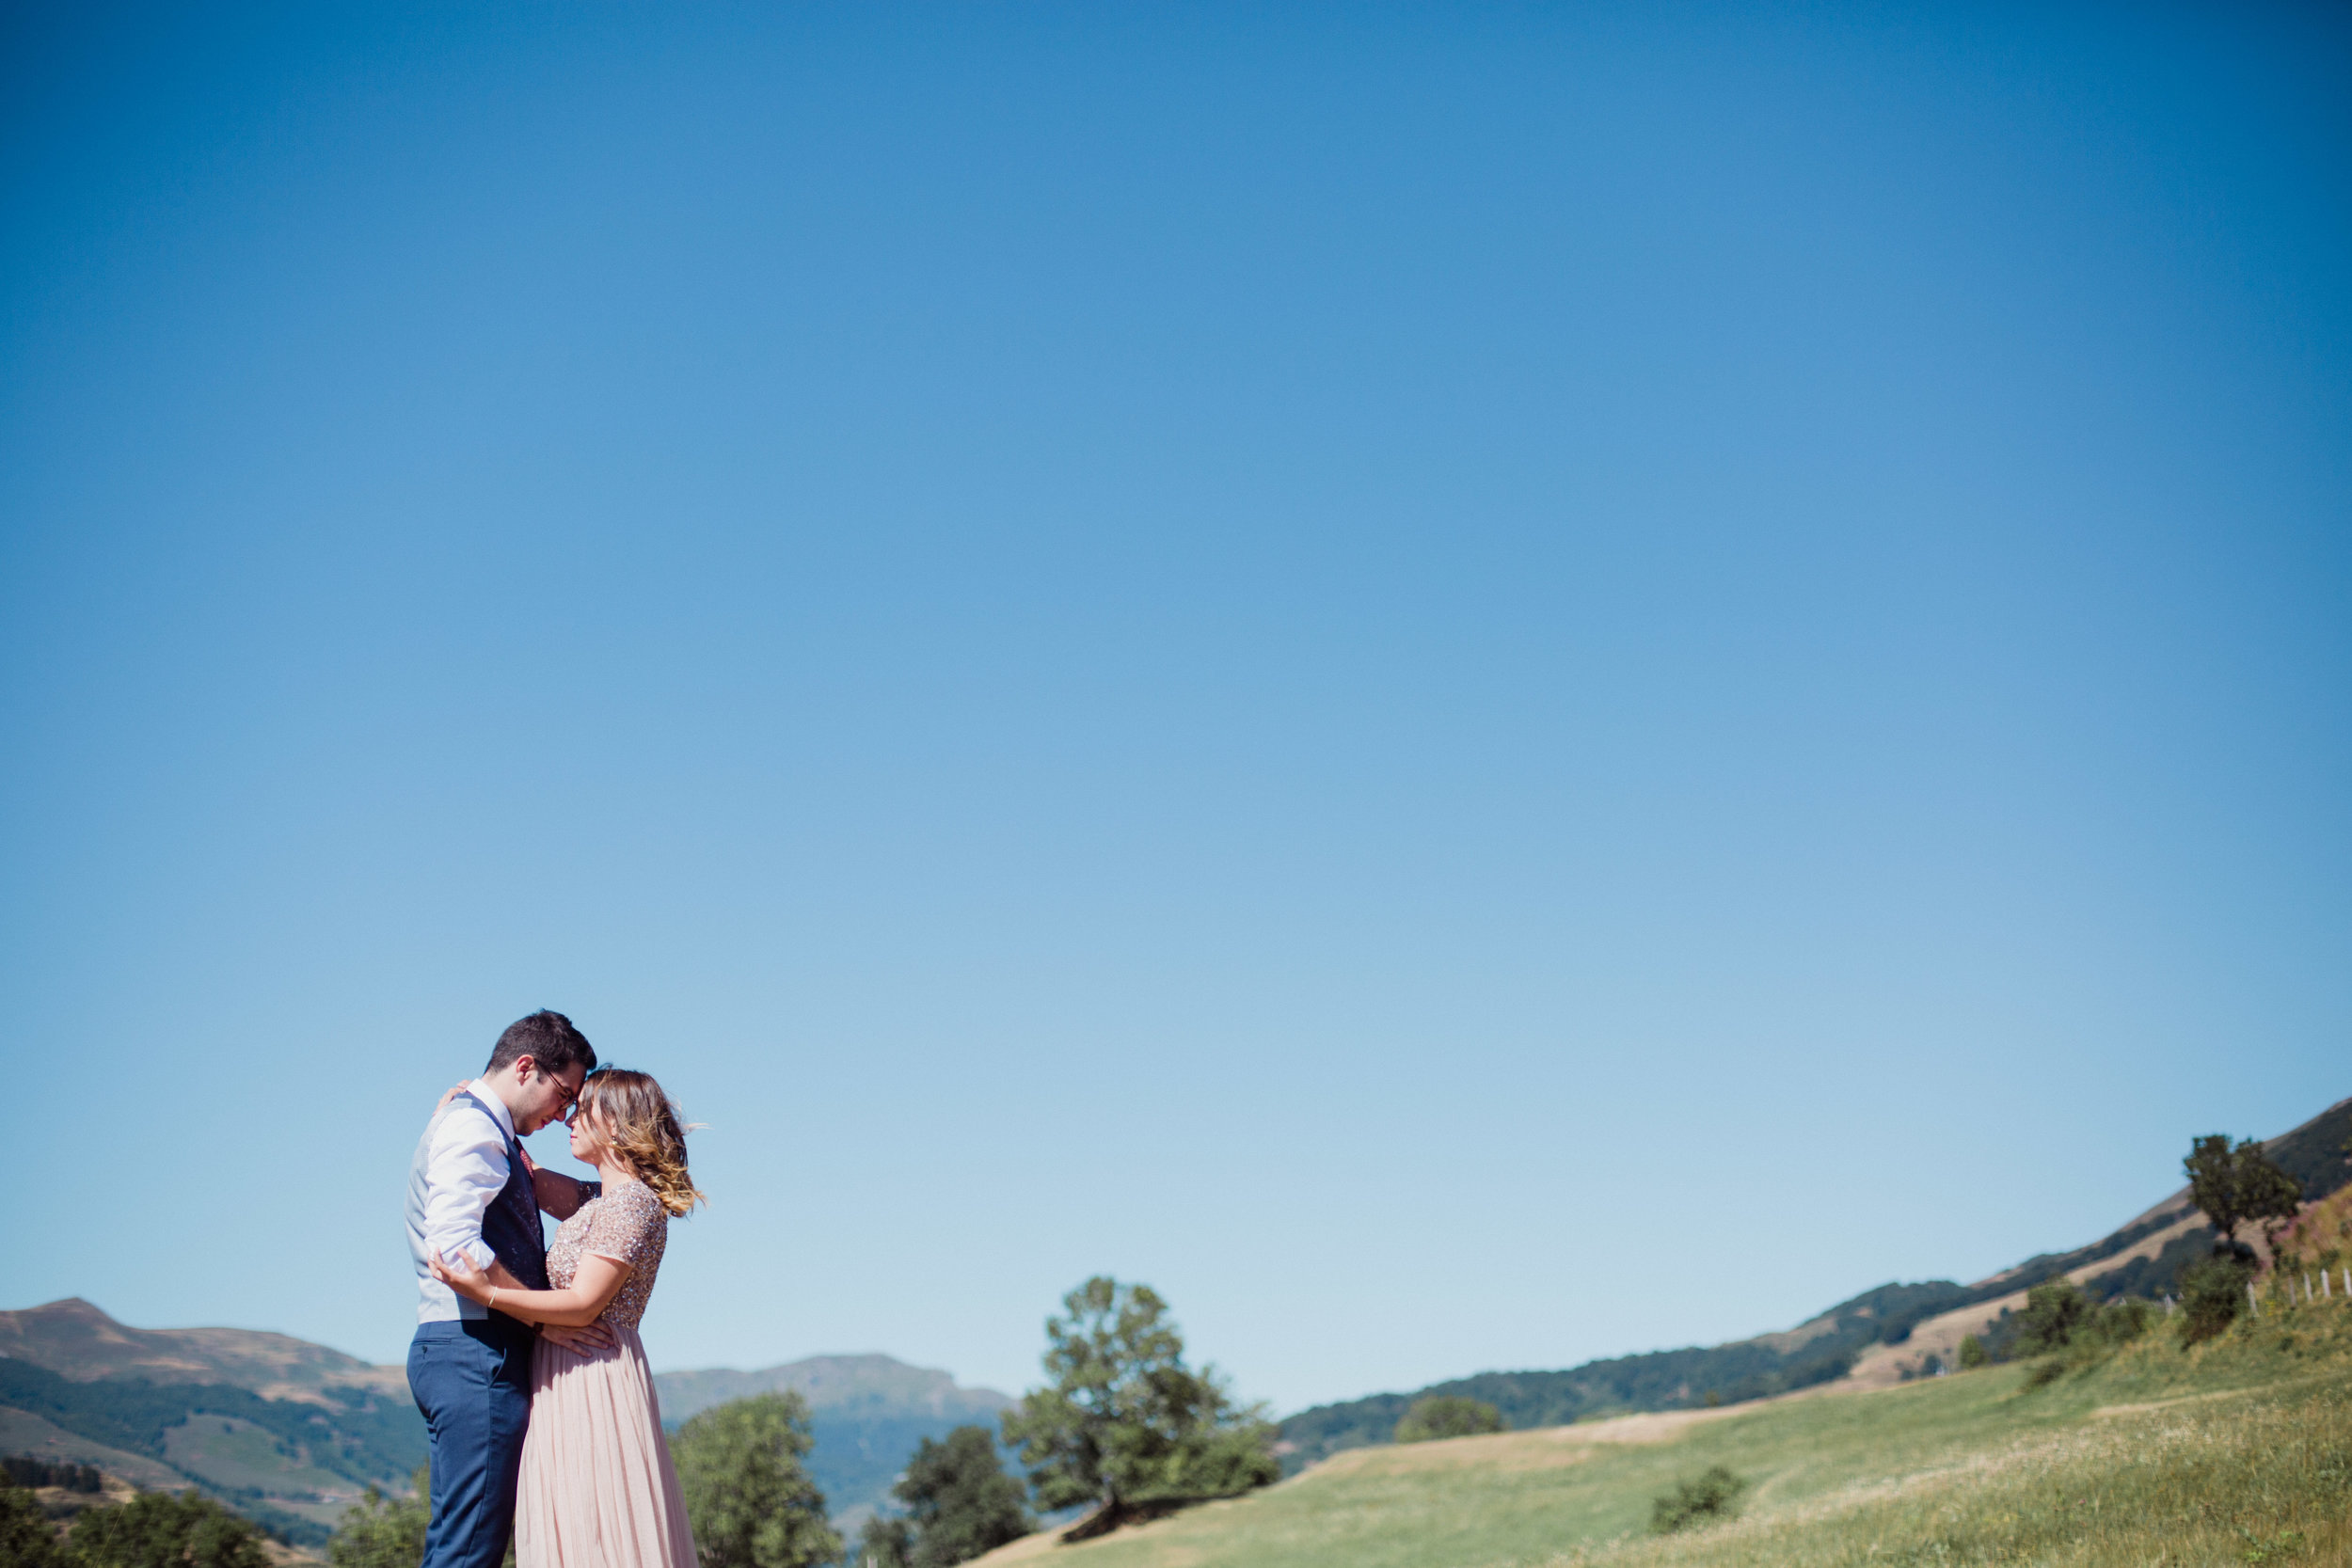 seance-photo-couple-seance-engagement-fiancailles-save-the-date-montagne-cantal-auvergne-photographe-paulinemaroussiap-bordeaux-dordogne